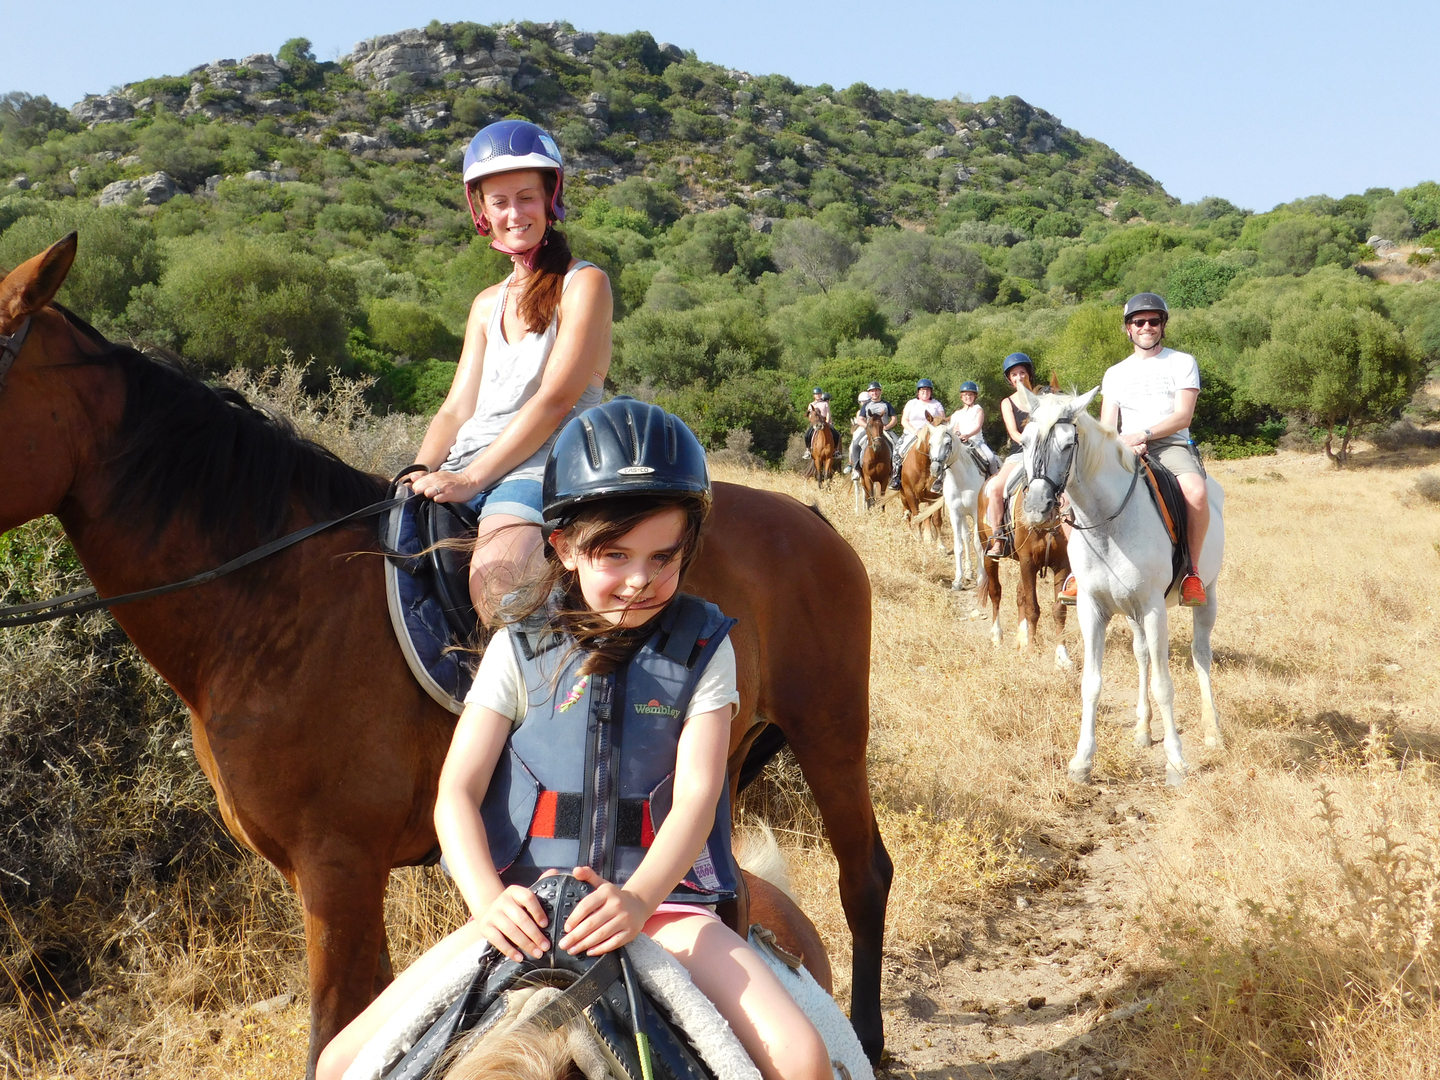 horse riding, horse rescue, horses, volunteering exchange, Andalucia, horse riding, horse trip, voluntouring, volunteers, volunteering, hospitality exchange, free hospitality